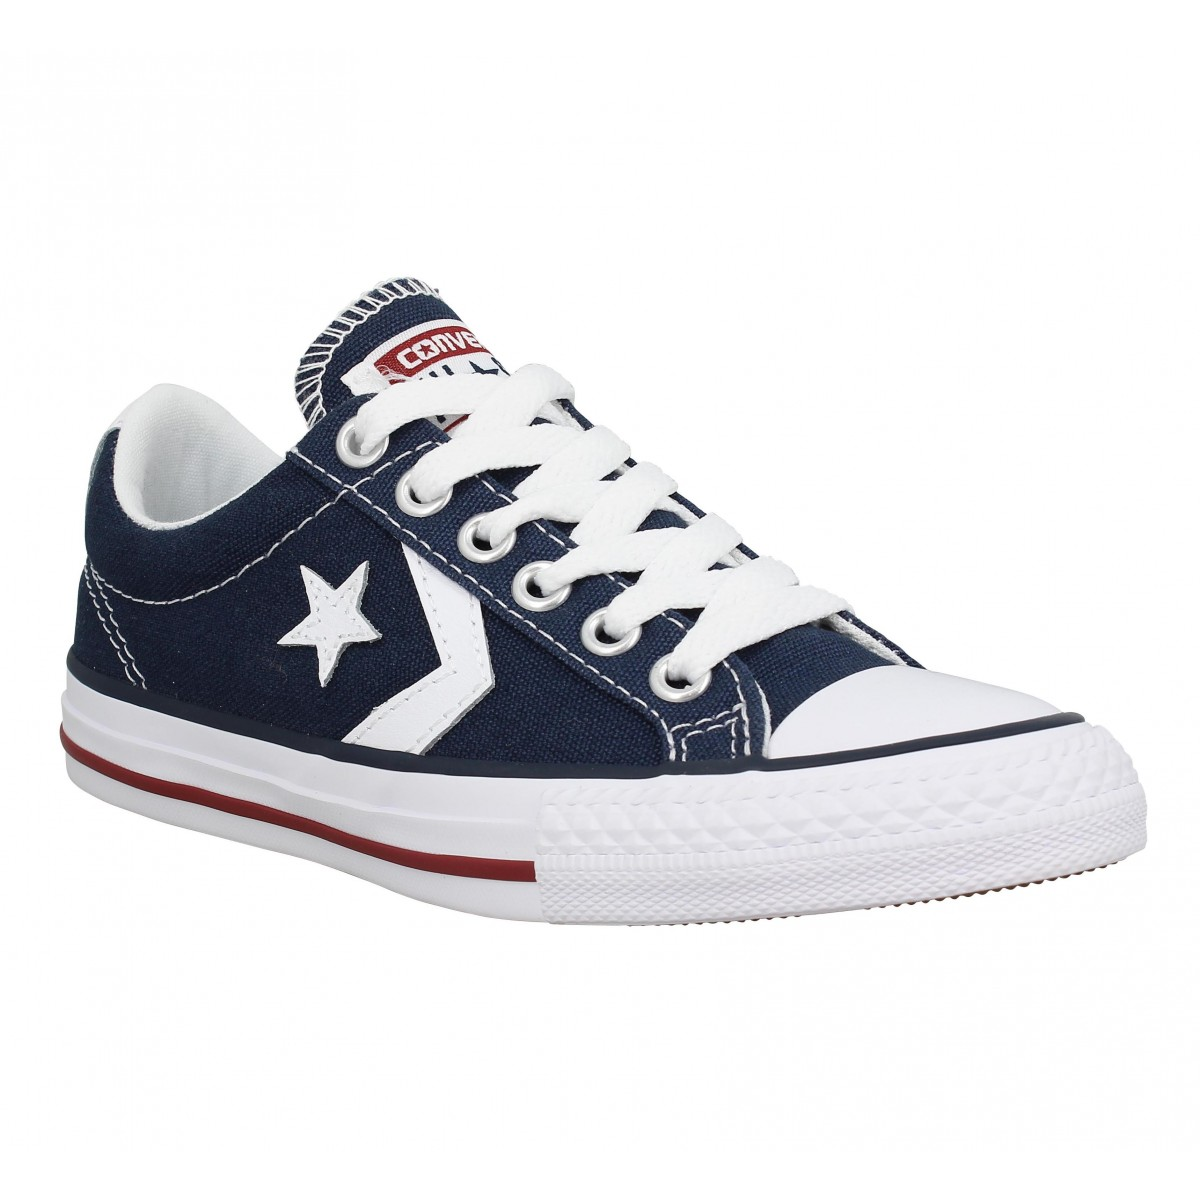 Baskets CONVERSE Star Player toile Enfant Navy